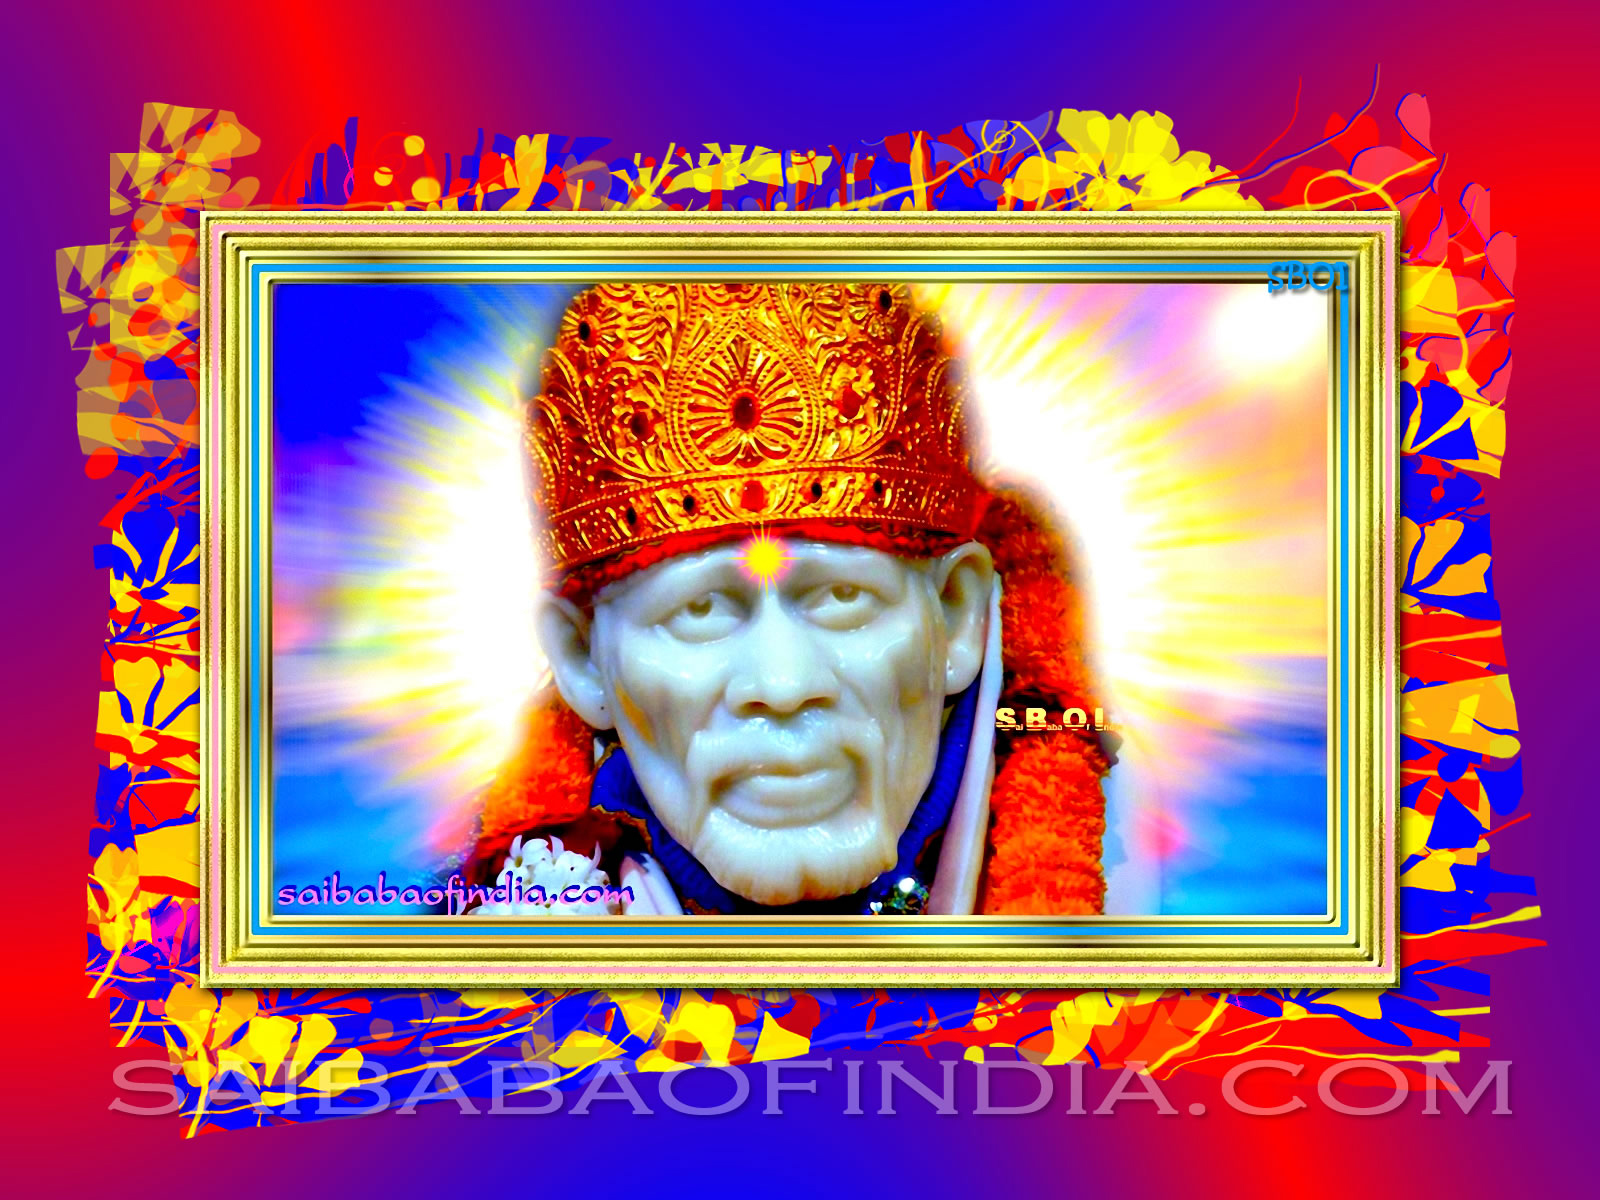 Shirdi Sai Baba Exclusive Wallpapers Free Download Desktop